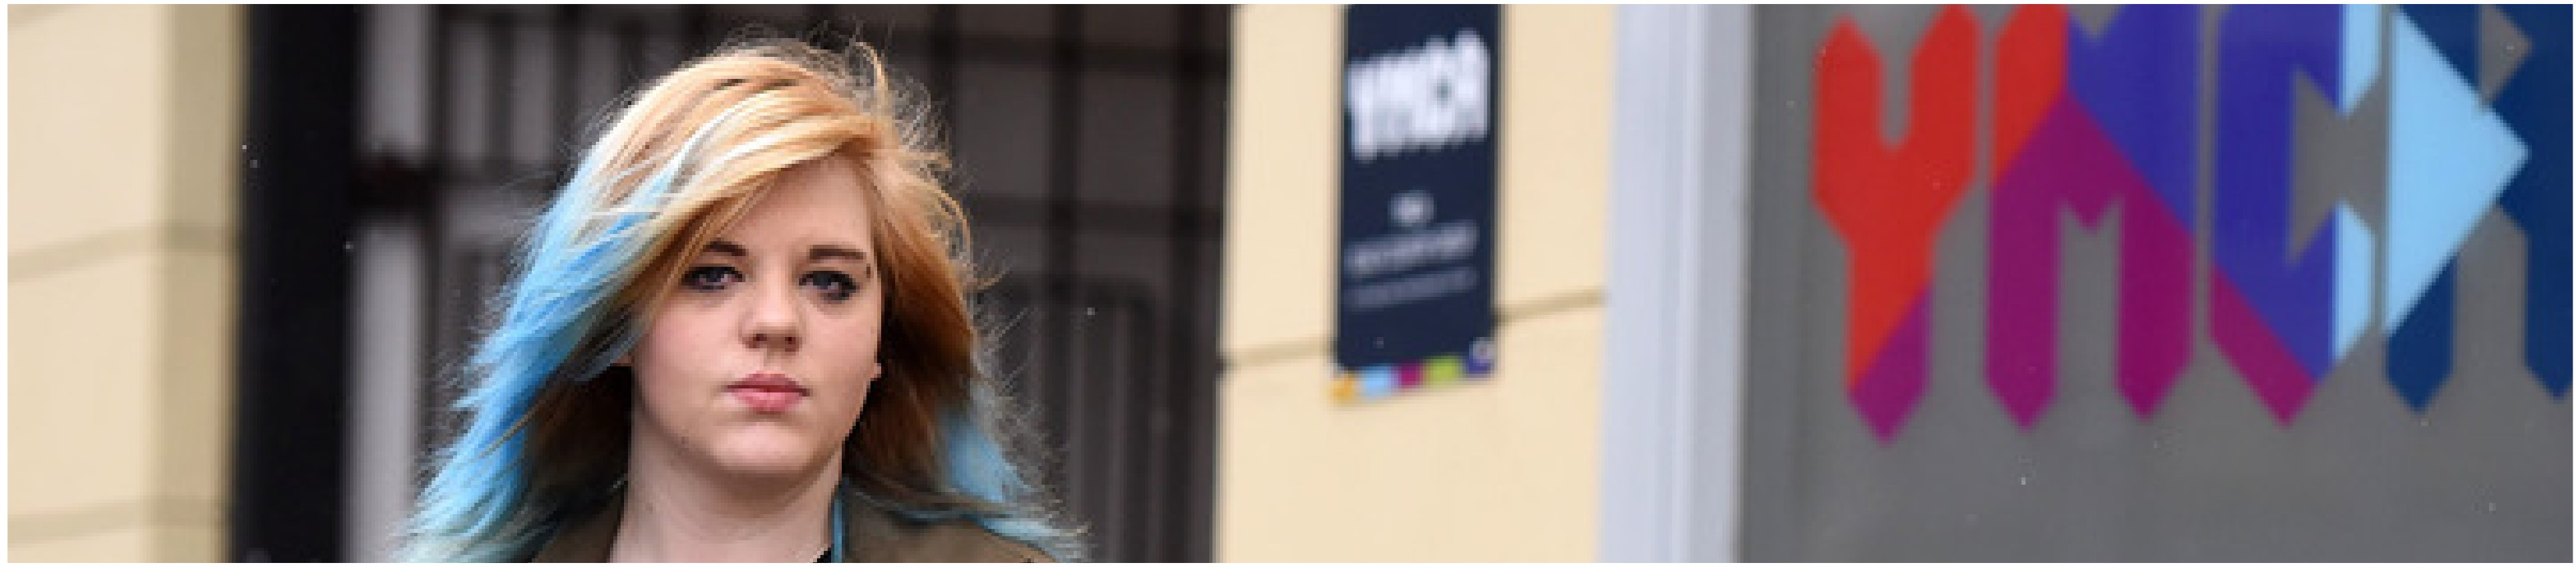 young woman outside a YMCA - Our jobs